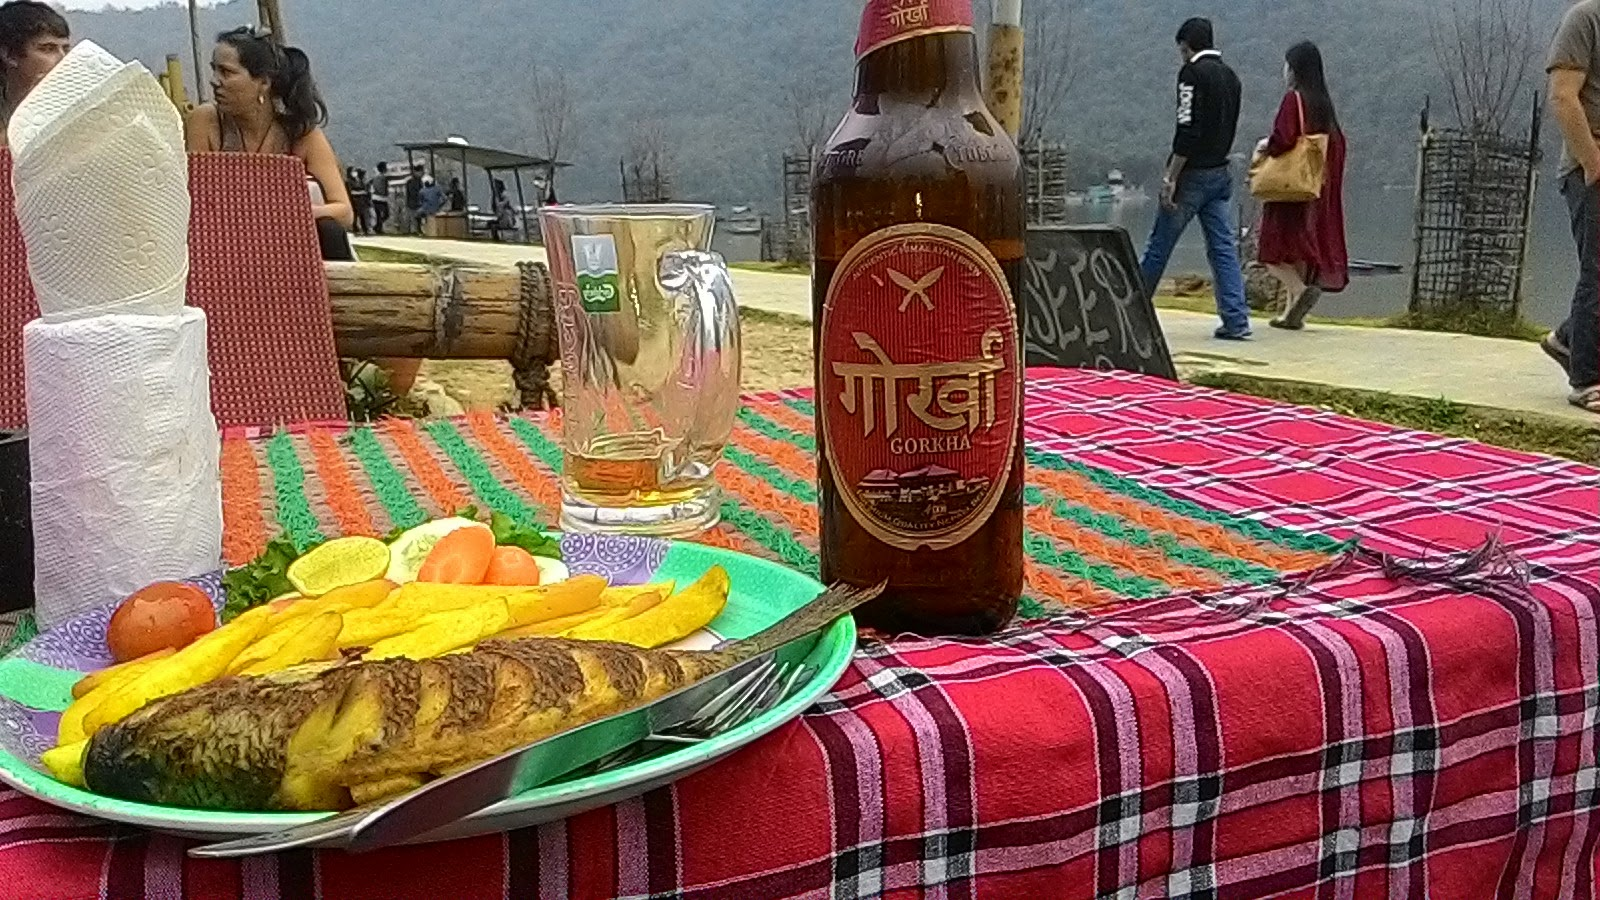 Tilapia fish and gokhra beer near phewa lake, pokhra